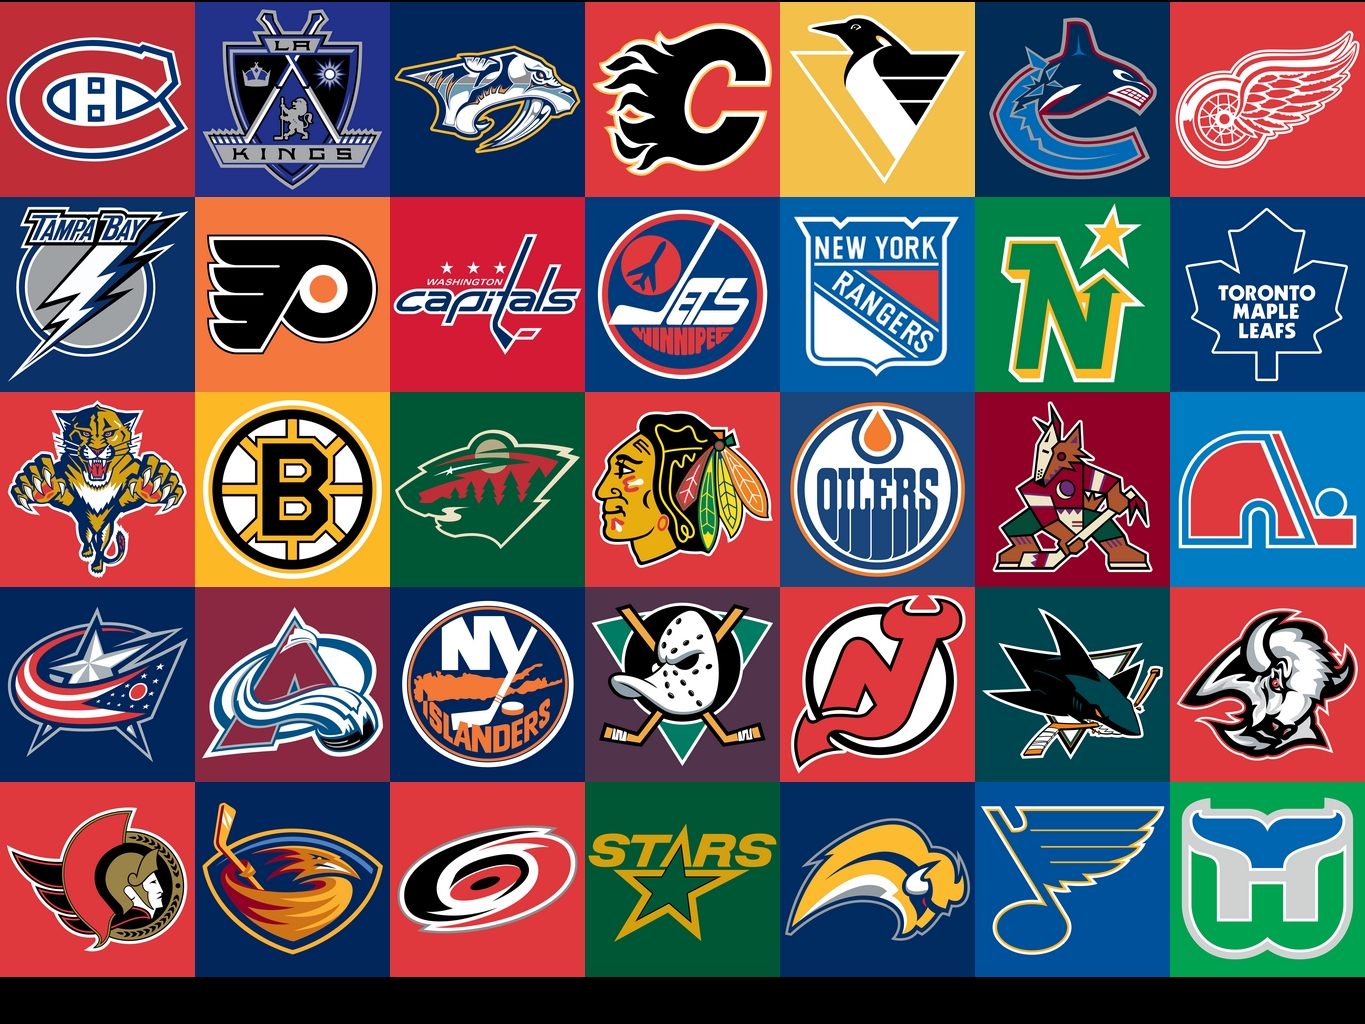 http://4.bp.blogspot.com/-Q8G_7pw8xPY/T4EW_Hn9PFI/AAAAAAAAAAo/cVyqZRqR568/s1600/NHL_Background_Logos.jpg